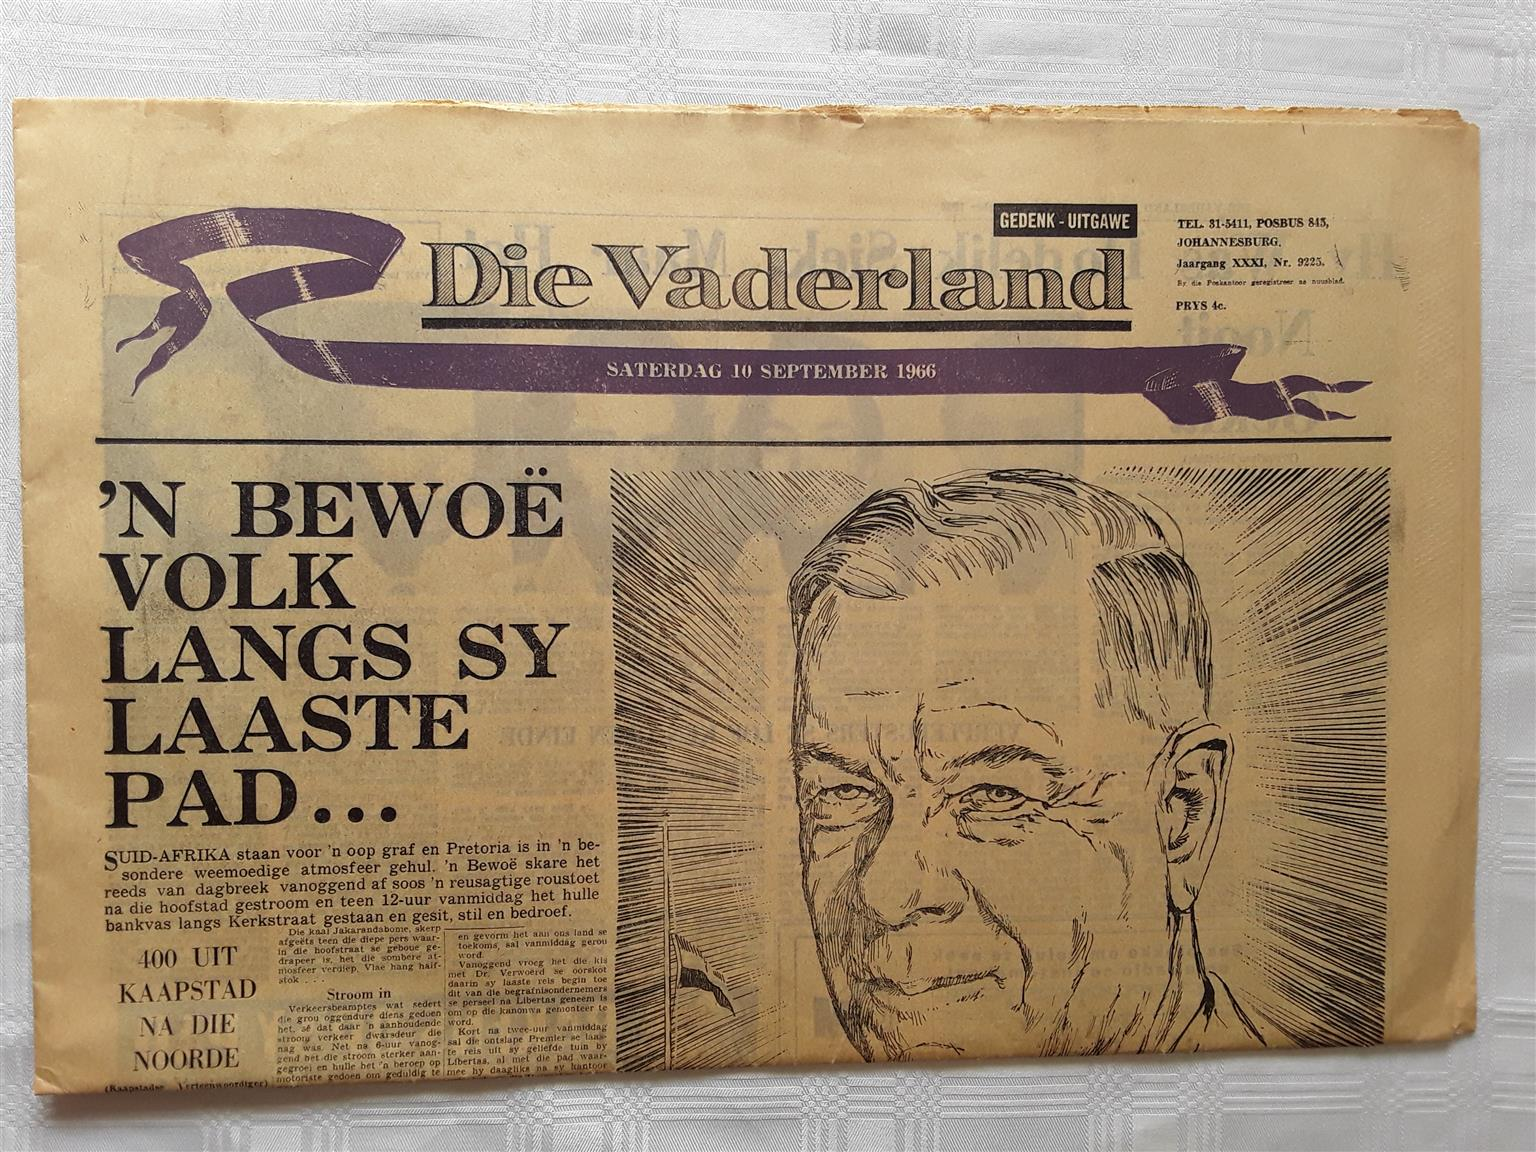 53 Years Old Newspapers (1966) – Dr Hendrik Verwoerd